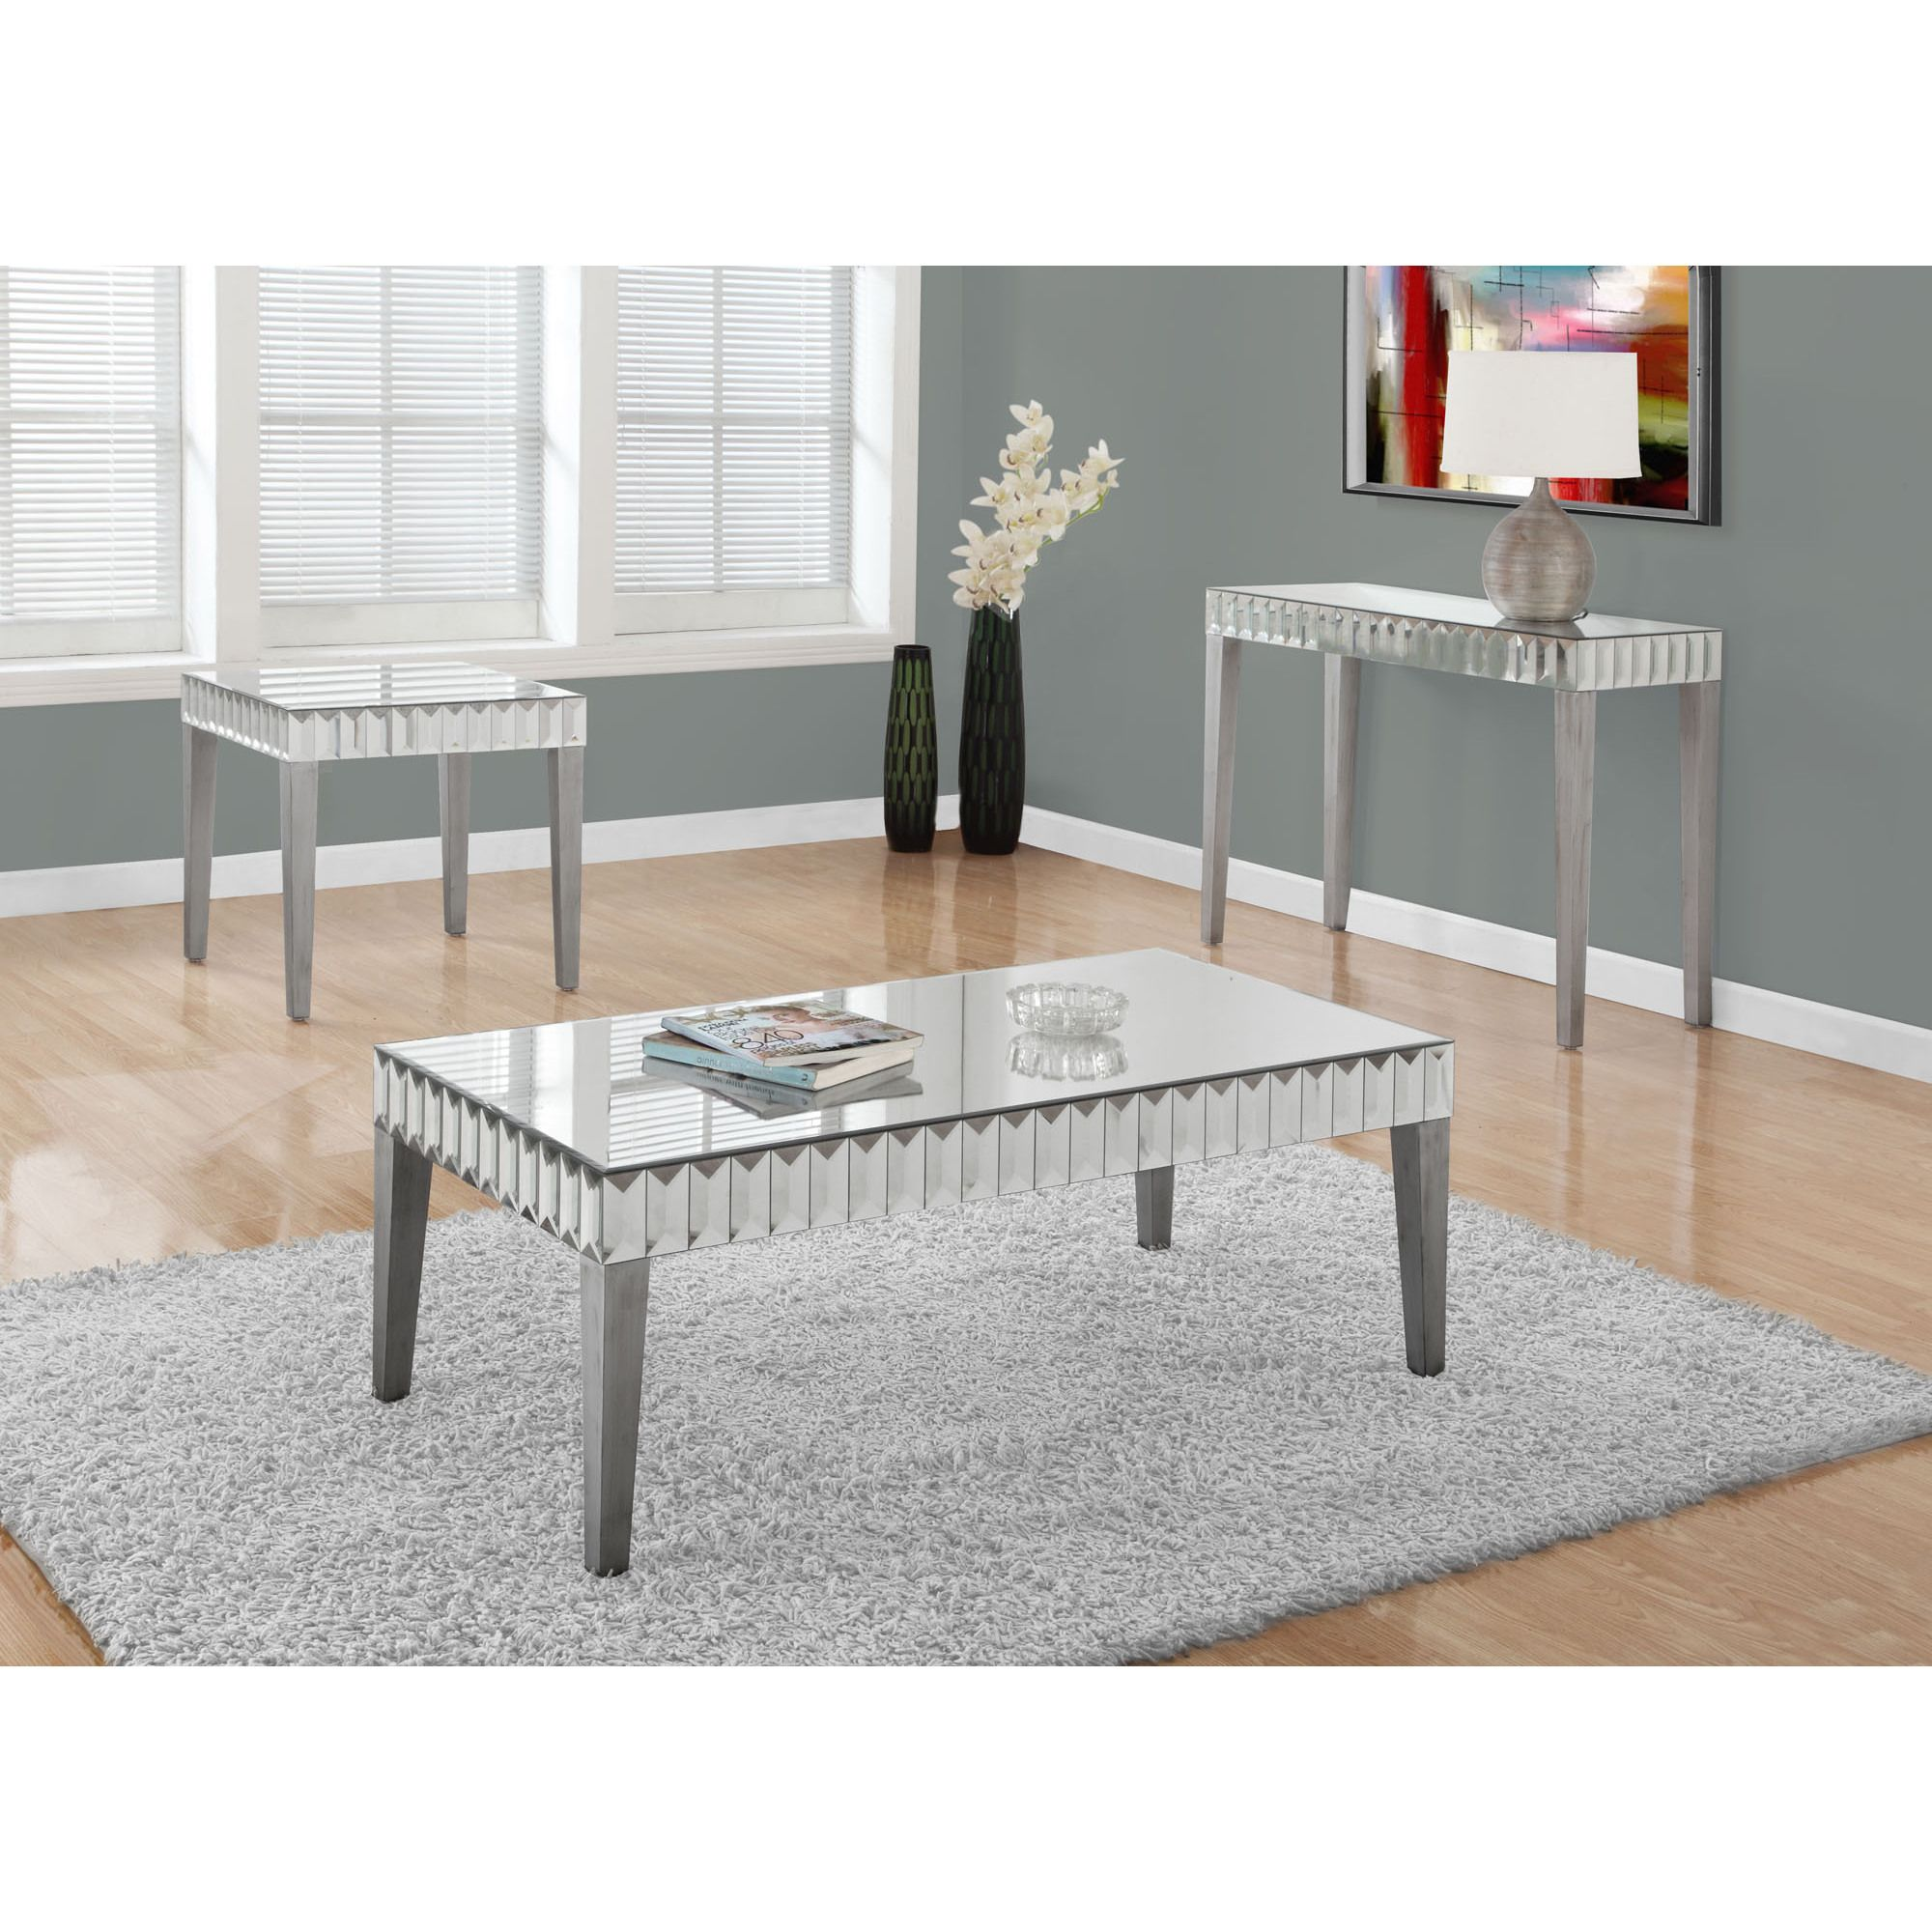 Monarch Coffee Table 48X 24 Brushed Silver Mirror Brushed